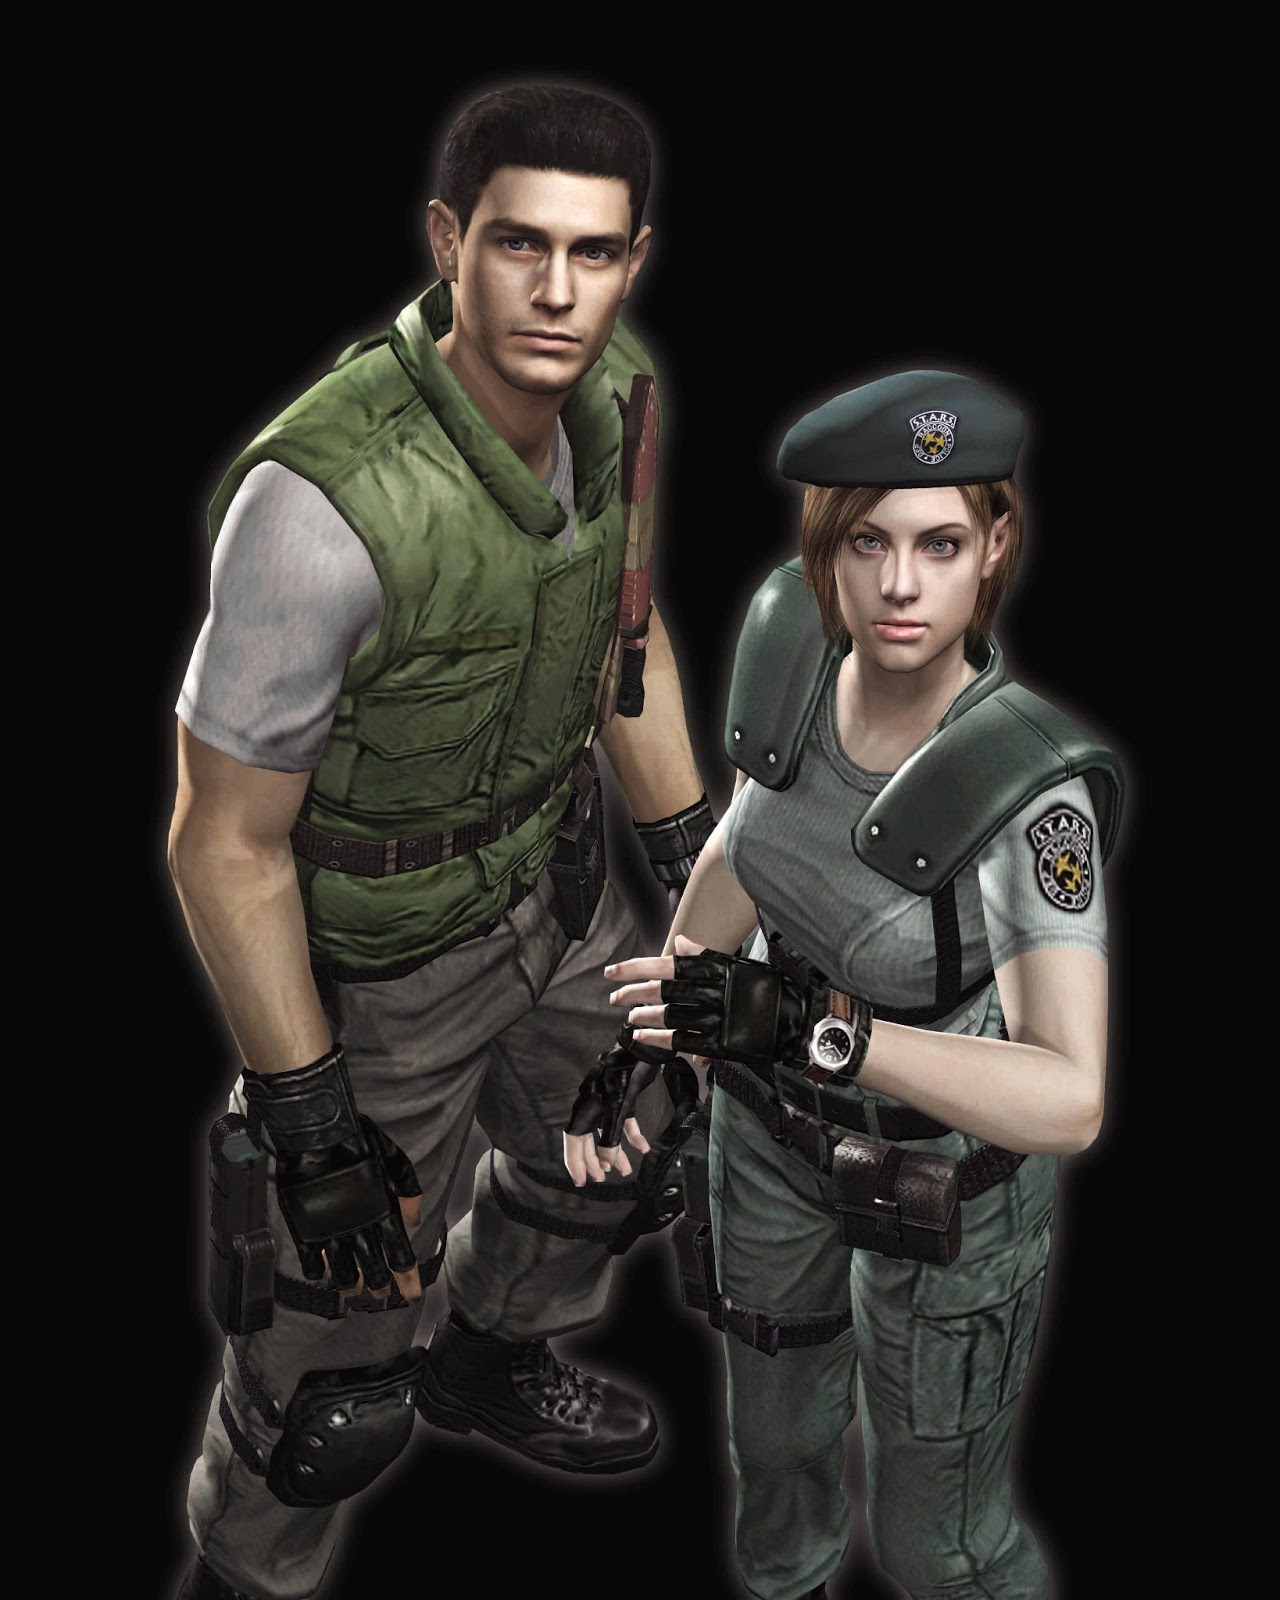 jill valentine and chris redfield relationship quizzes